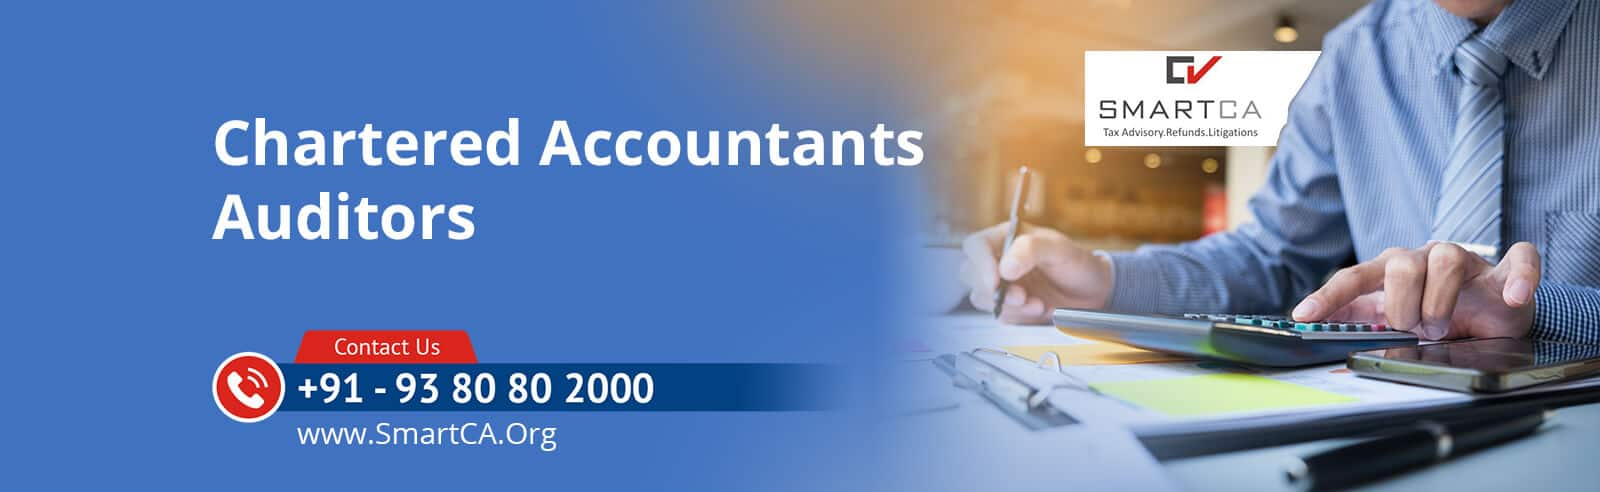 Auditors in Chennai Vyasarpadi